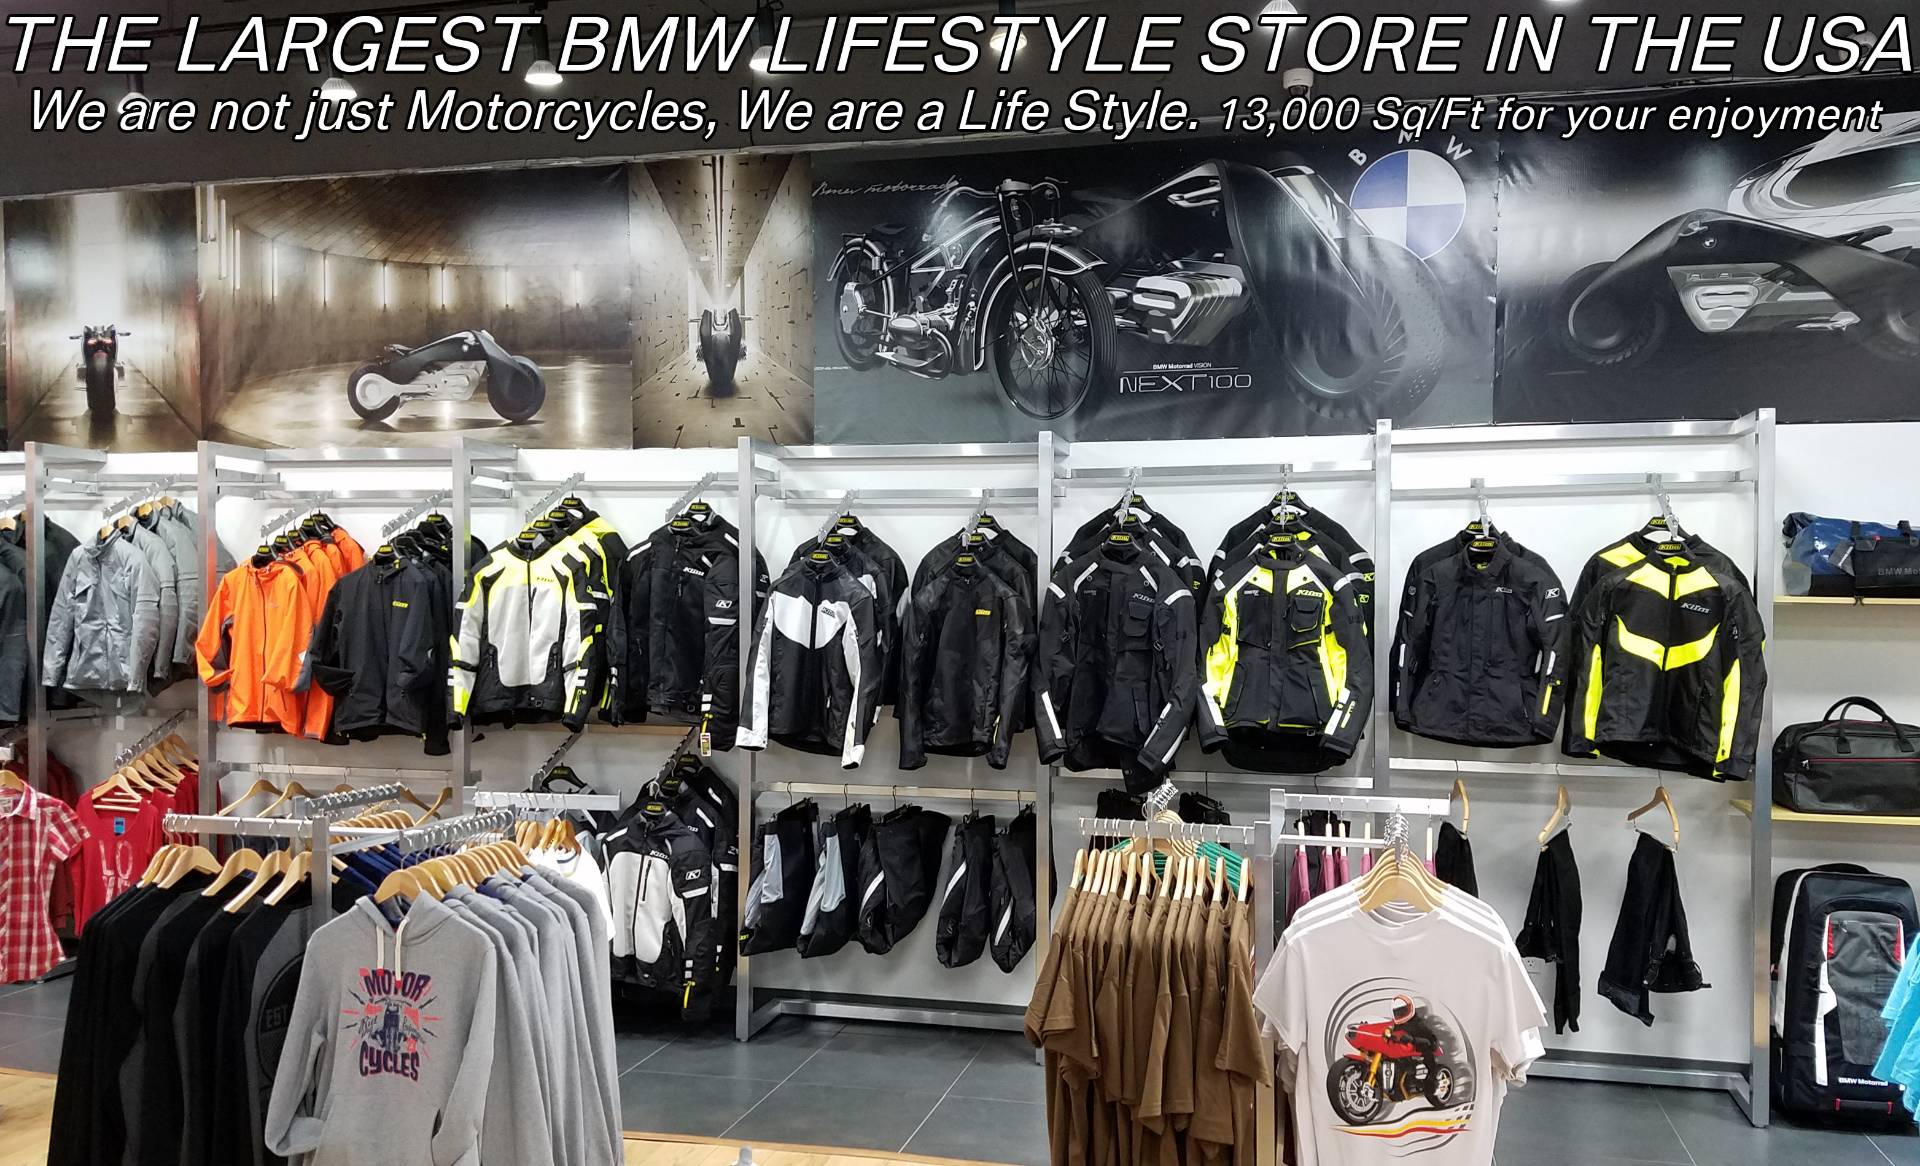 New 2019 BMW R 1250 GS for sale, BMW R 1250GS for sale, BMW Motorcycle GS, new BMW GS, Spirit of GS, BMW Motorcycles of Miami, Motorcycles of Miami, Motorcycles Miami, New Motorcycles, Used Motorcycles, pre-owned. #BMWMotorcyclesOfMiami #MotorcyclesOfMiami. - Photo 51